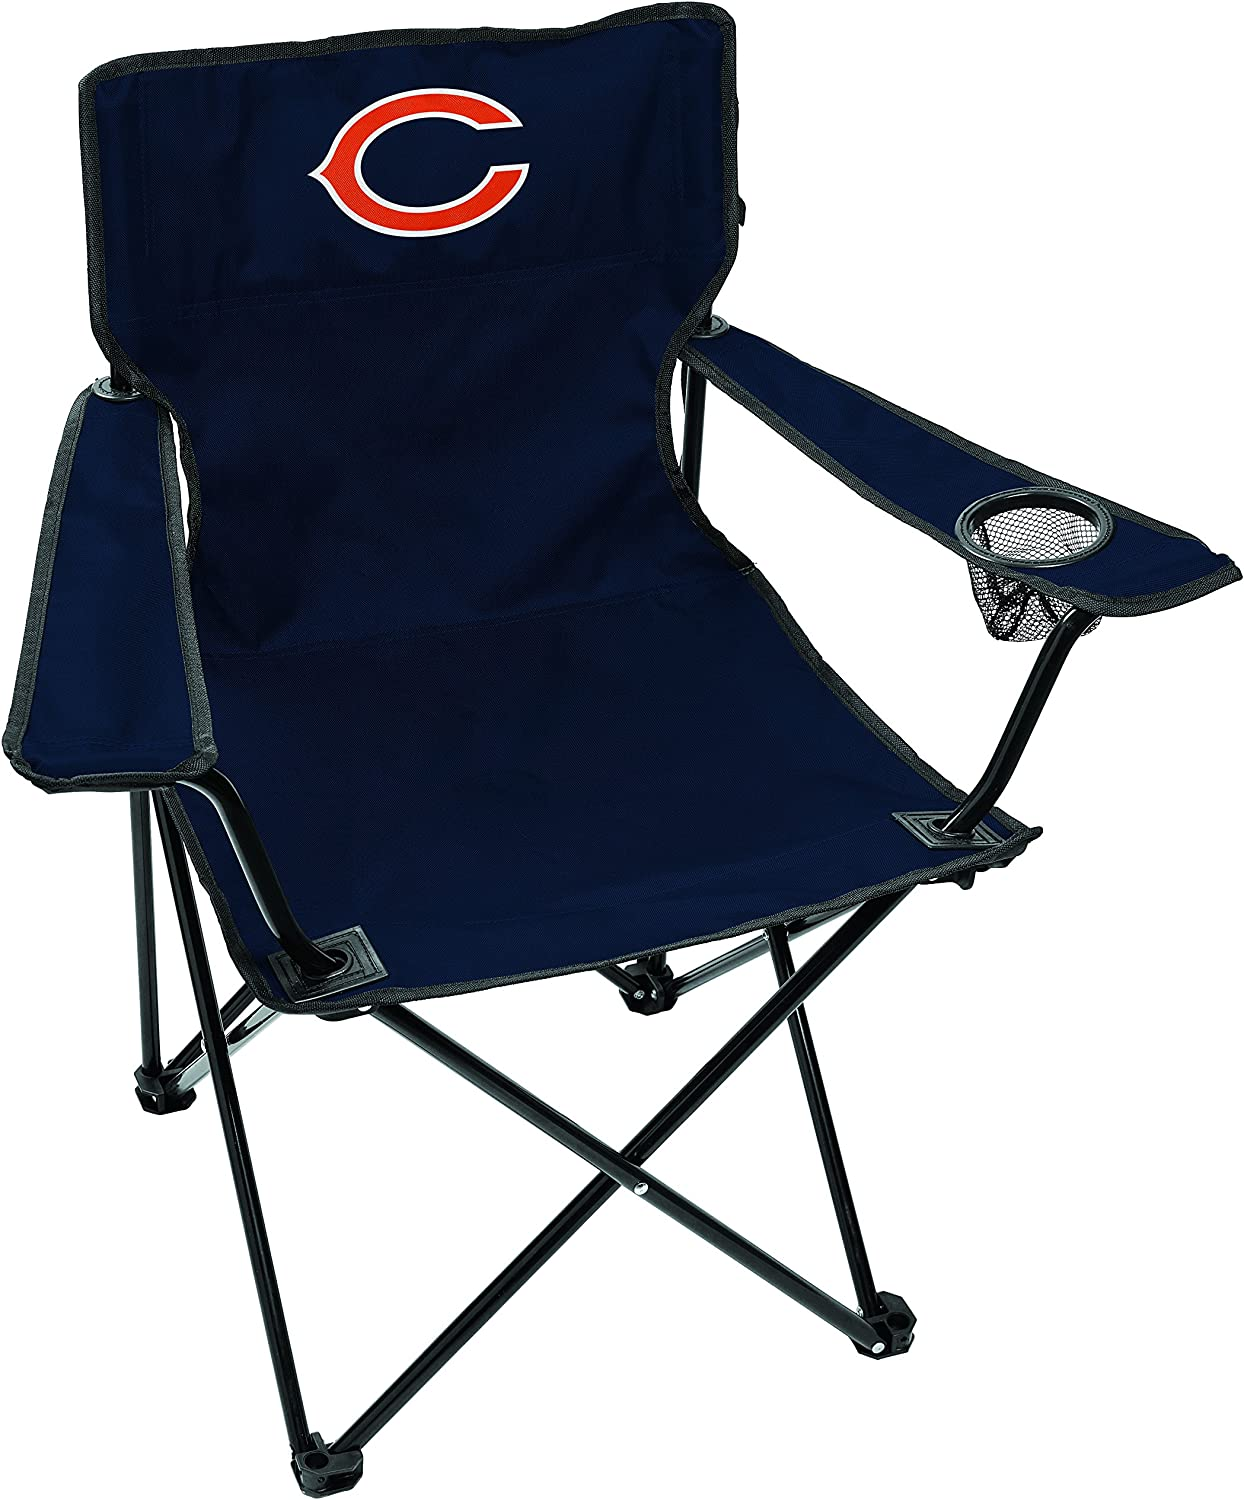 Rawlings NFL Gameday Elite Lightweight Folding Tailgating Chair, with Carrying Case (ALL TEAM OPTIONS)